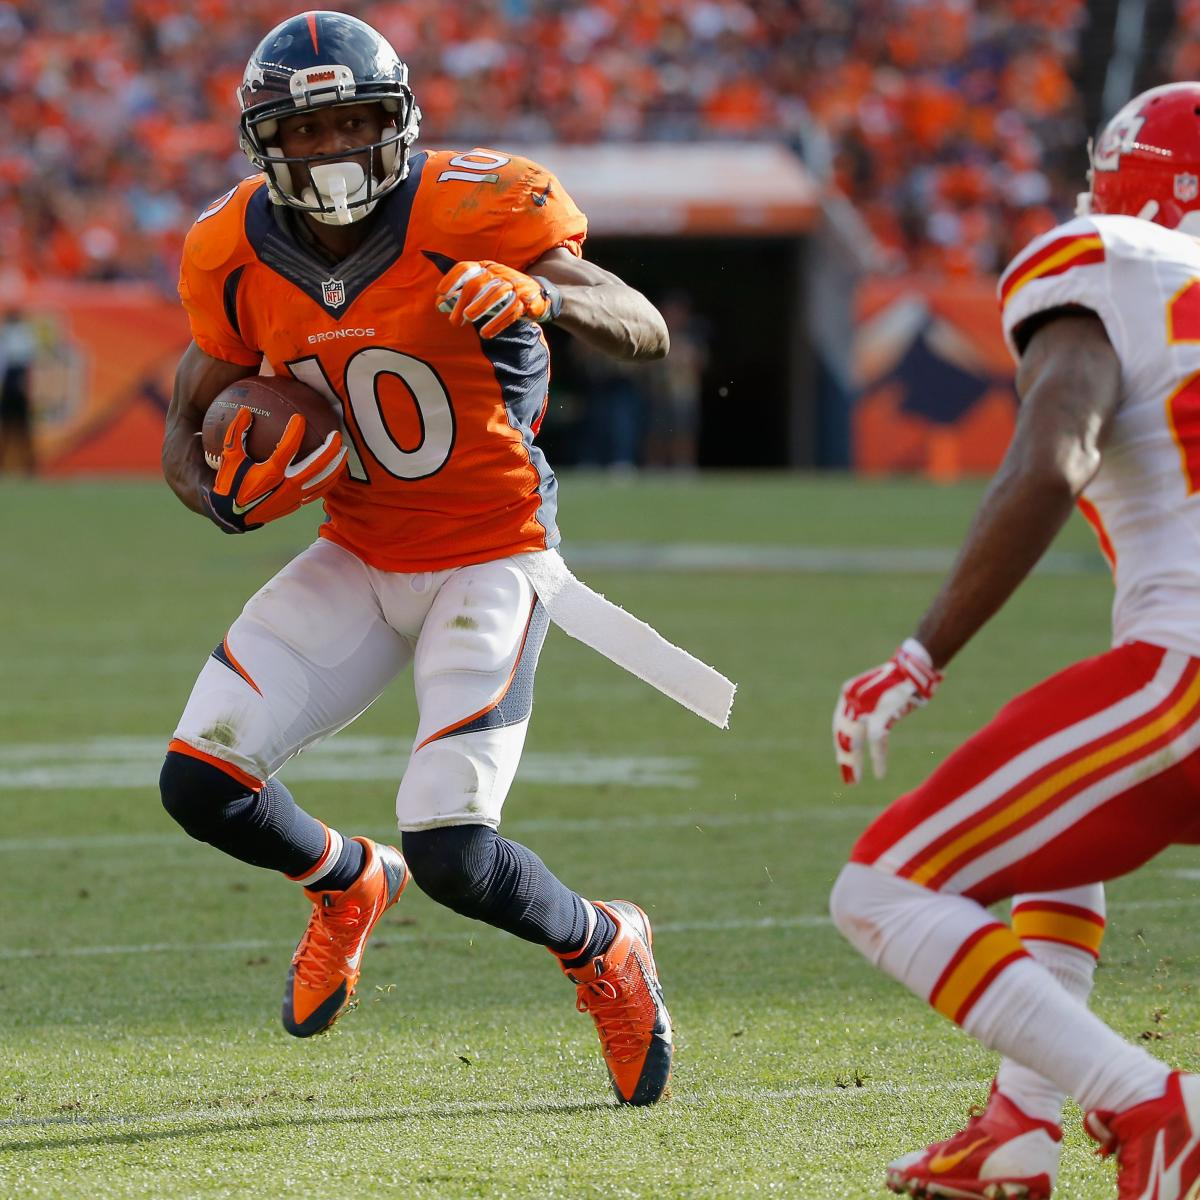 Denver Broncos Vs. Kansas City Chiefs: Live Denver Score